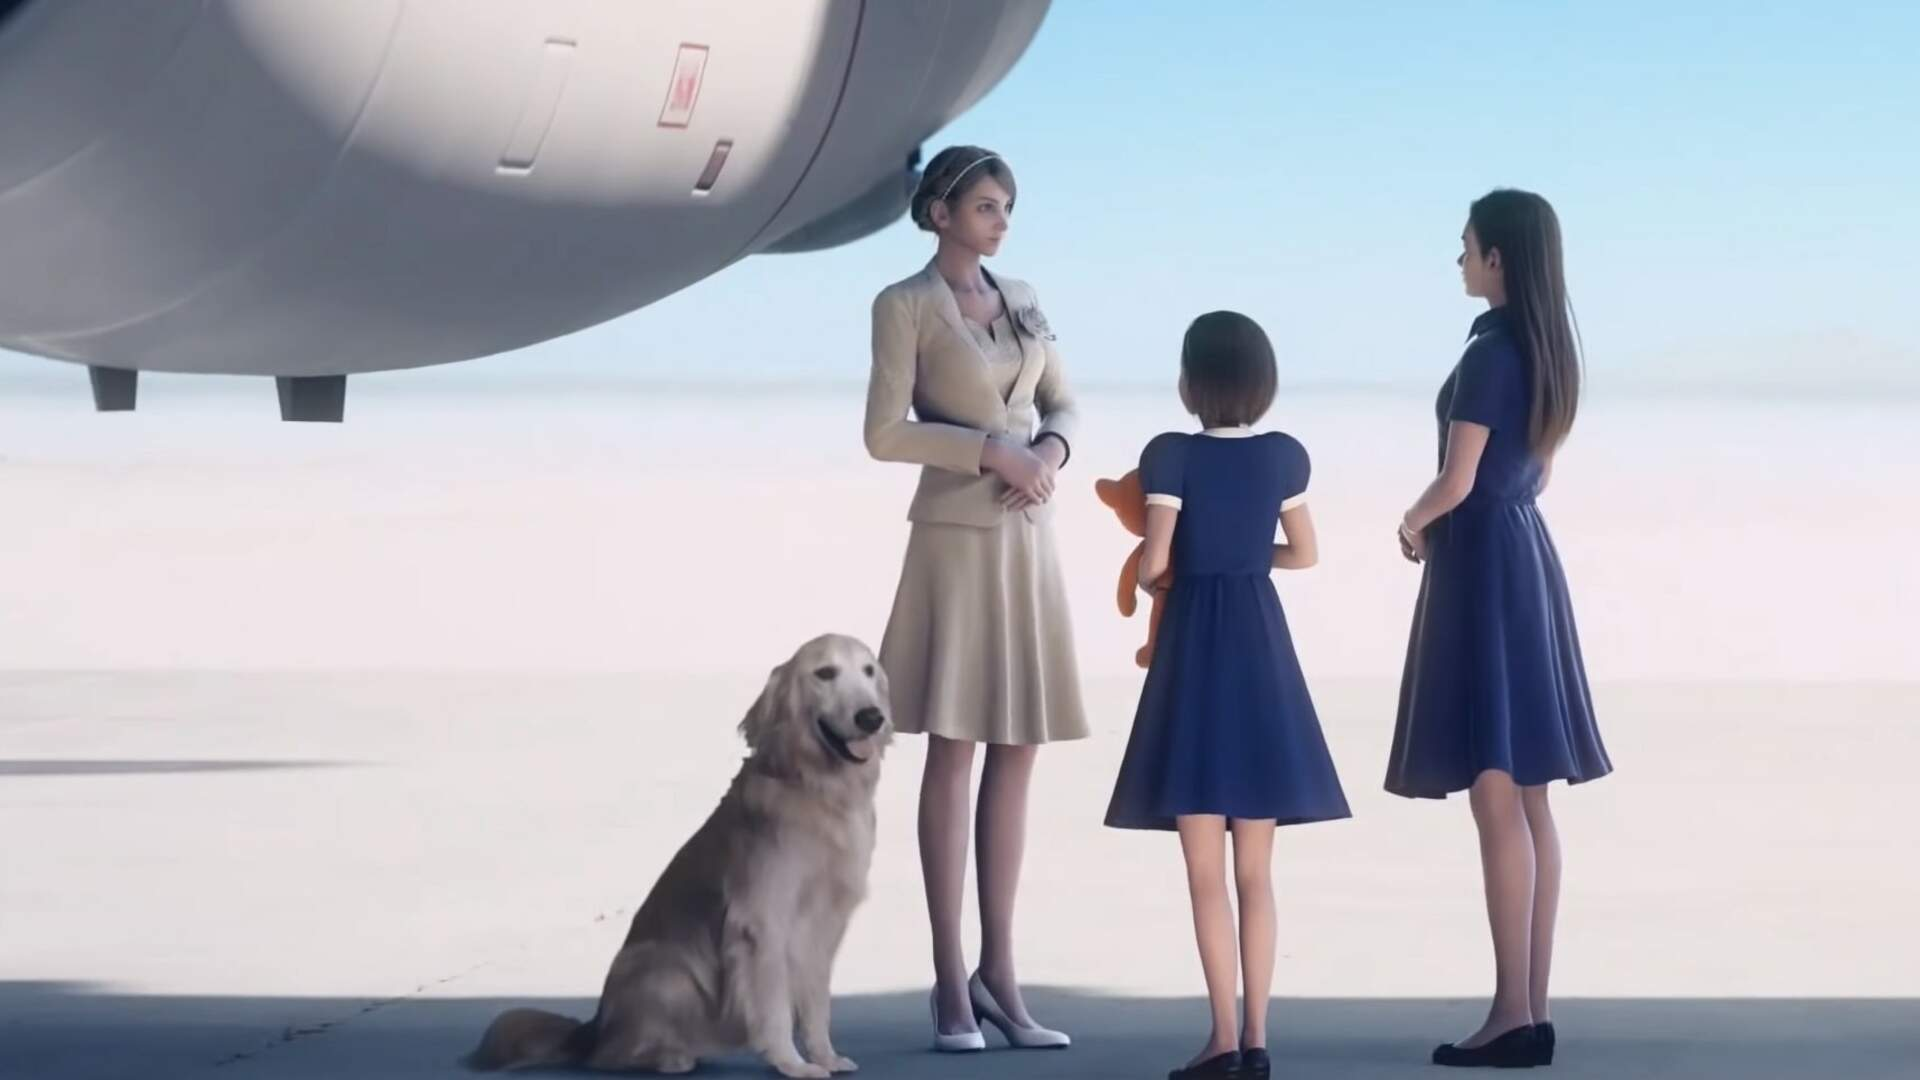 How Ace Combat 7's Dog.jpg Brought Joy to a Turbulent January in the Games Industry